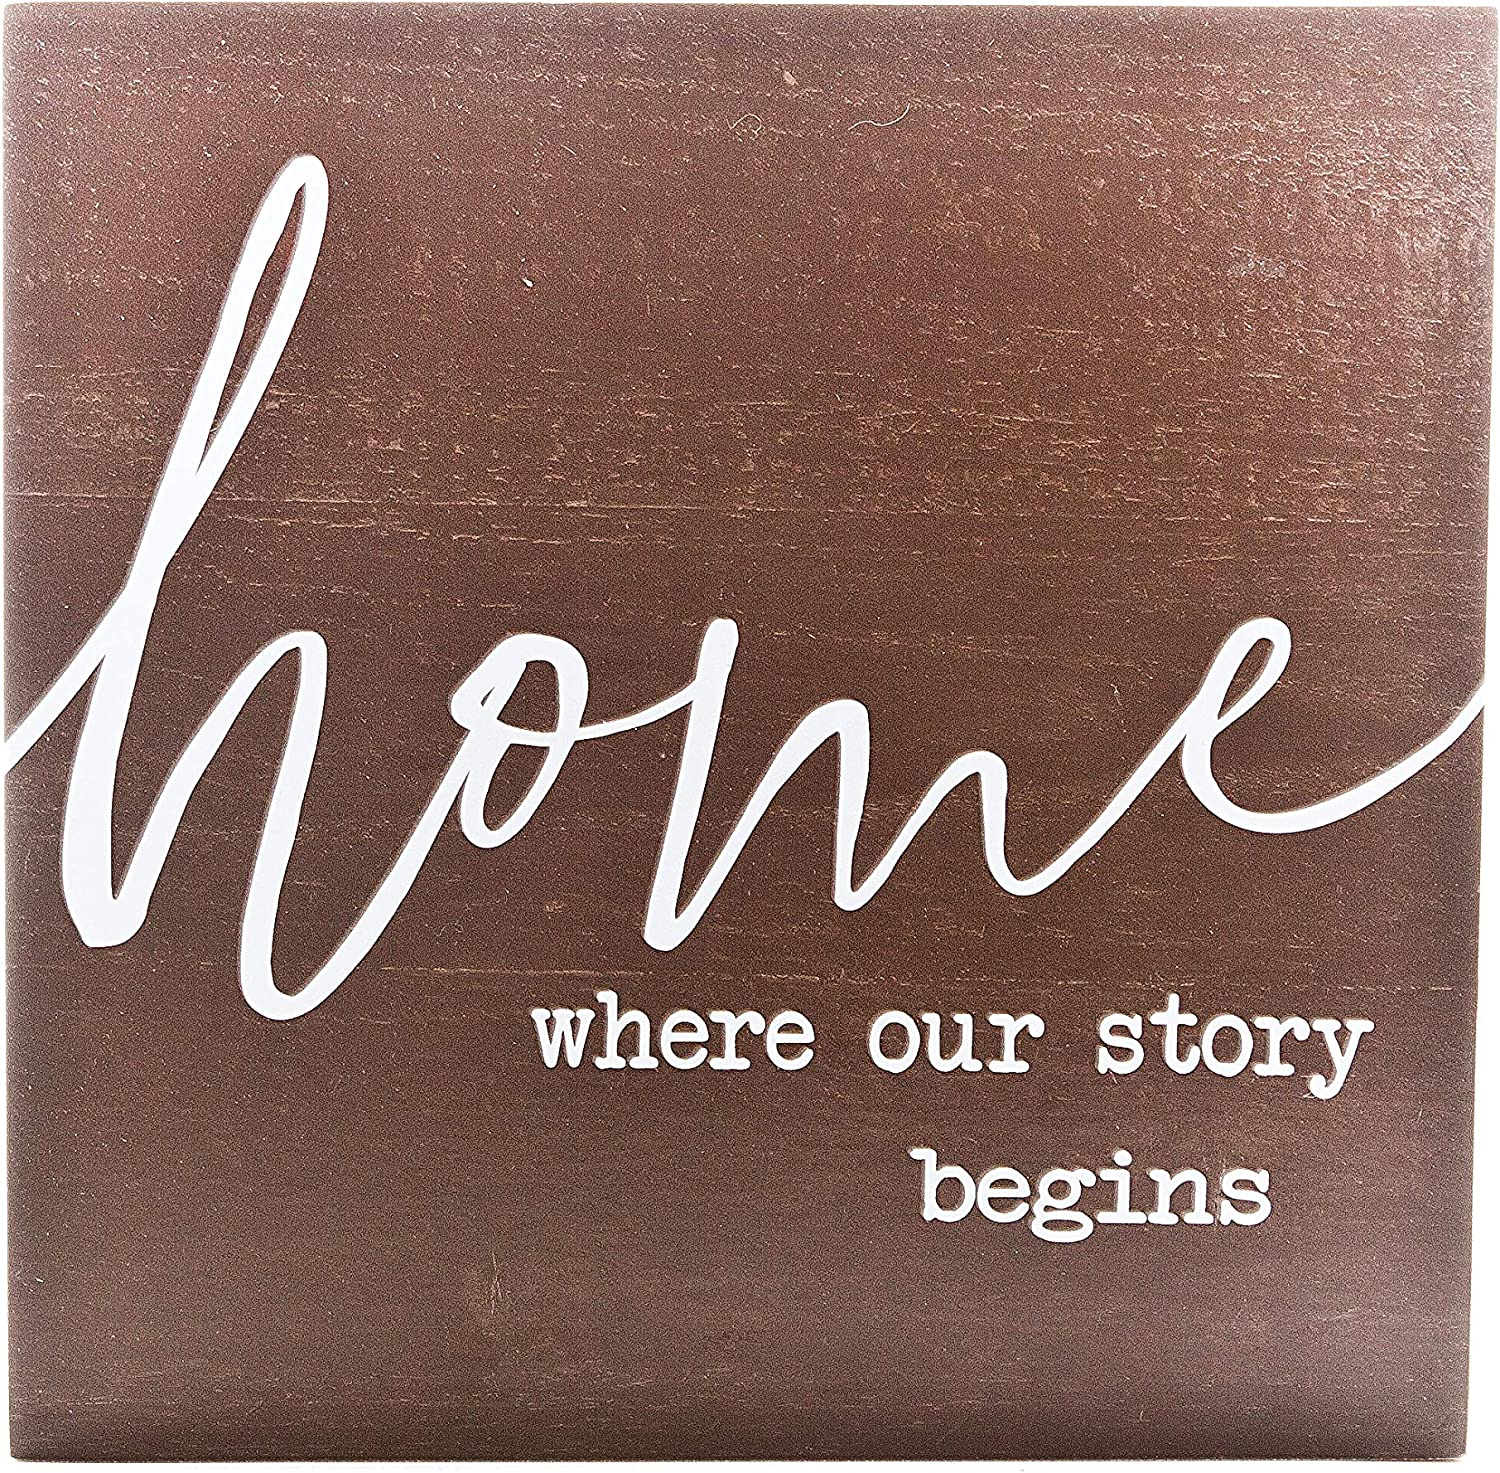 """Home Where Our Story Begins"" Wooden Box Sign - Inspirational Decor"